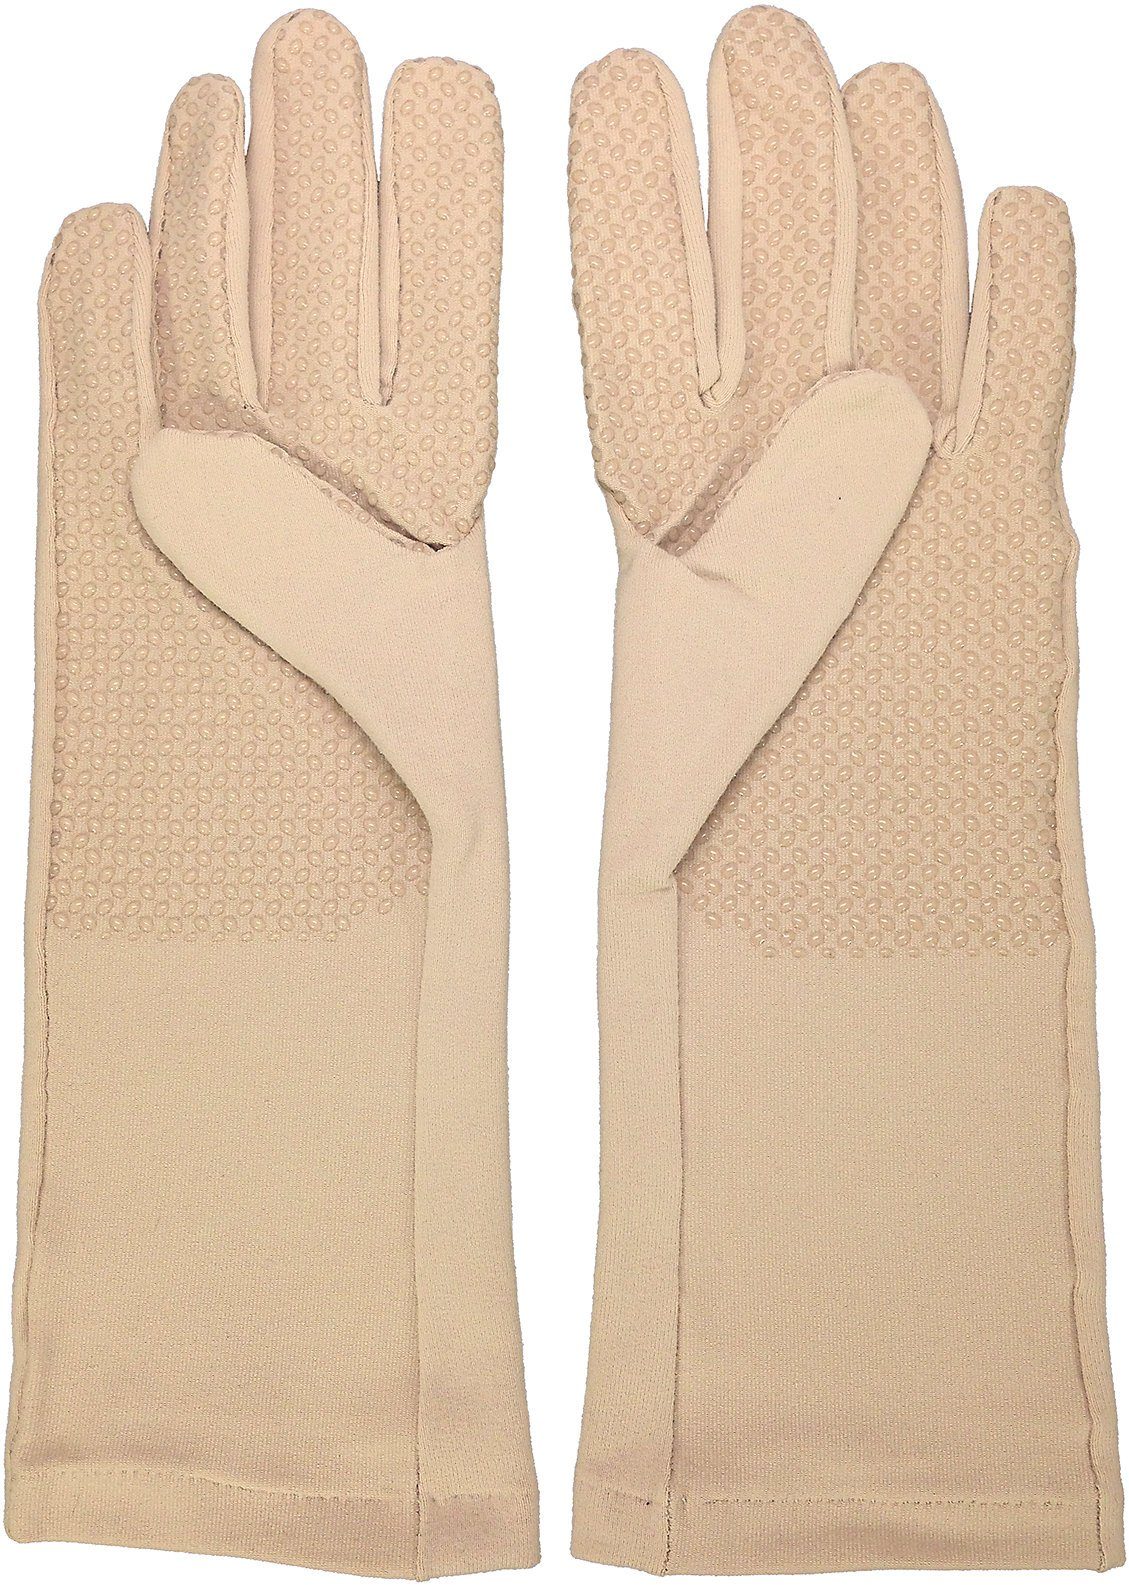 Coolibar UPF 50+ Unisex Full Finger Gloves - Sun Protective (Medium - Sahara)